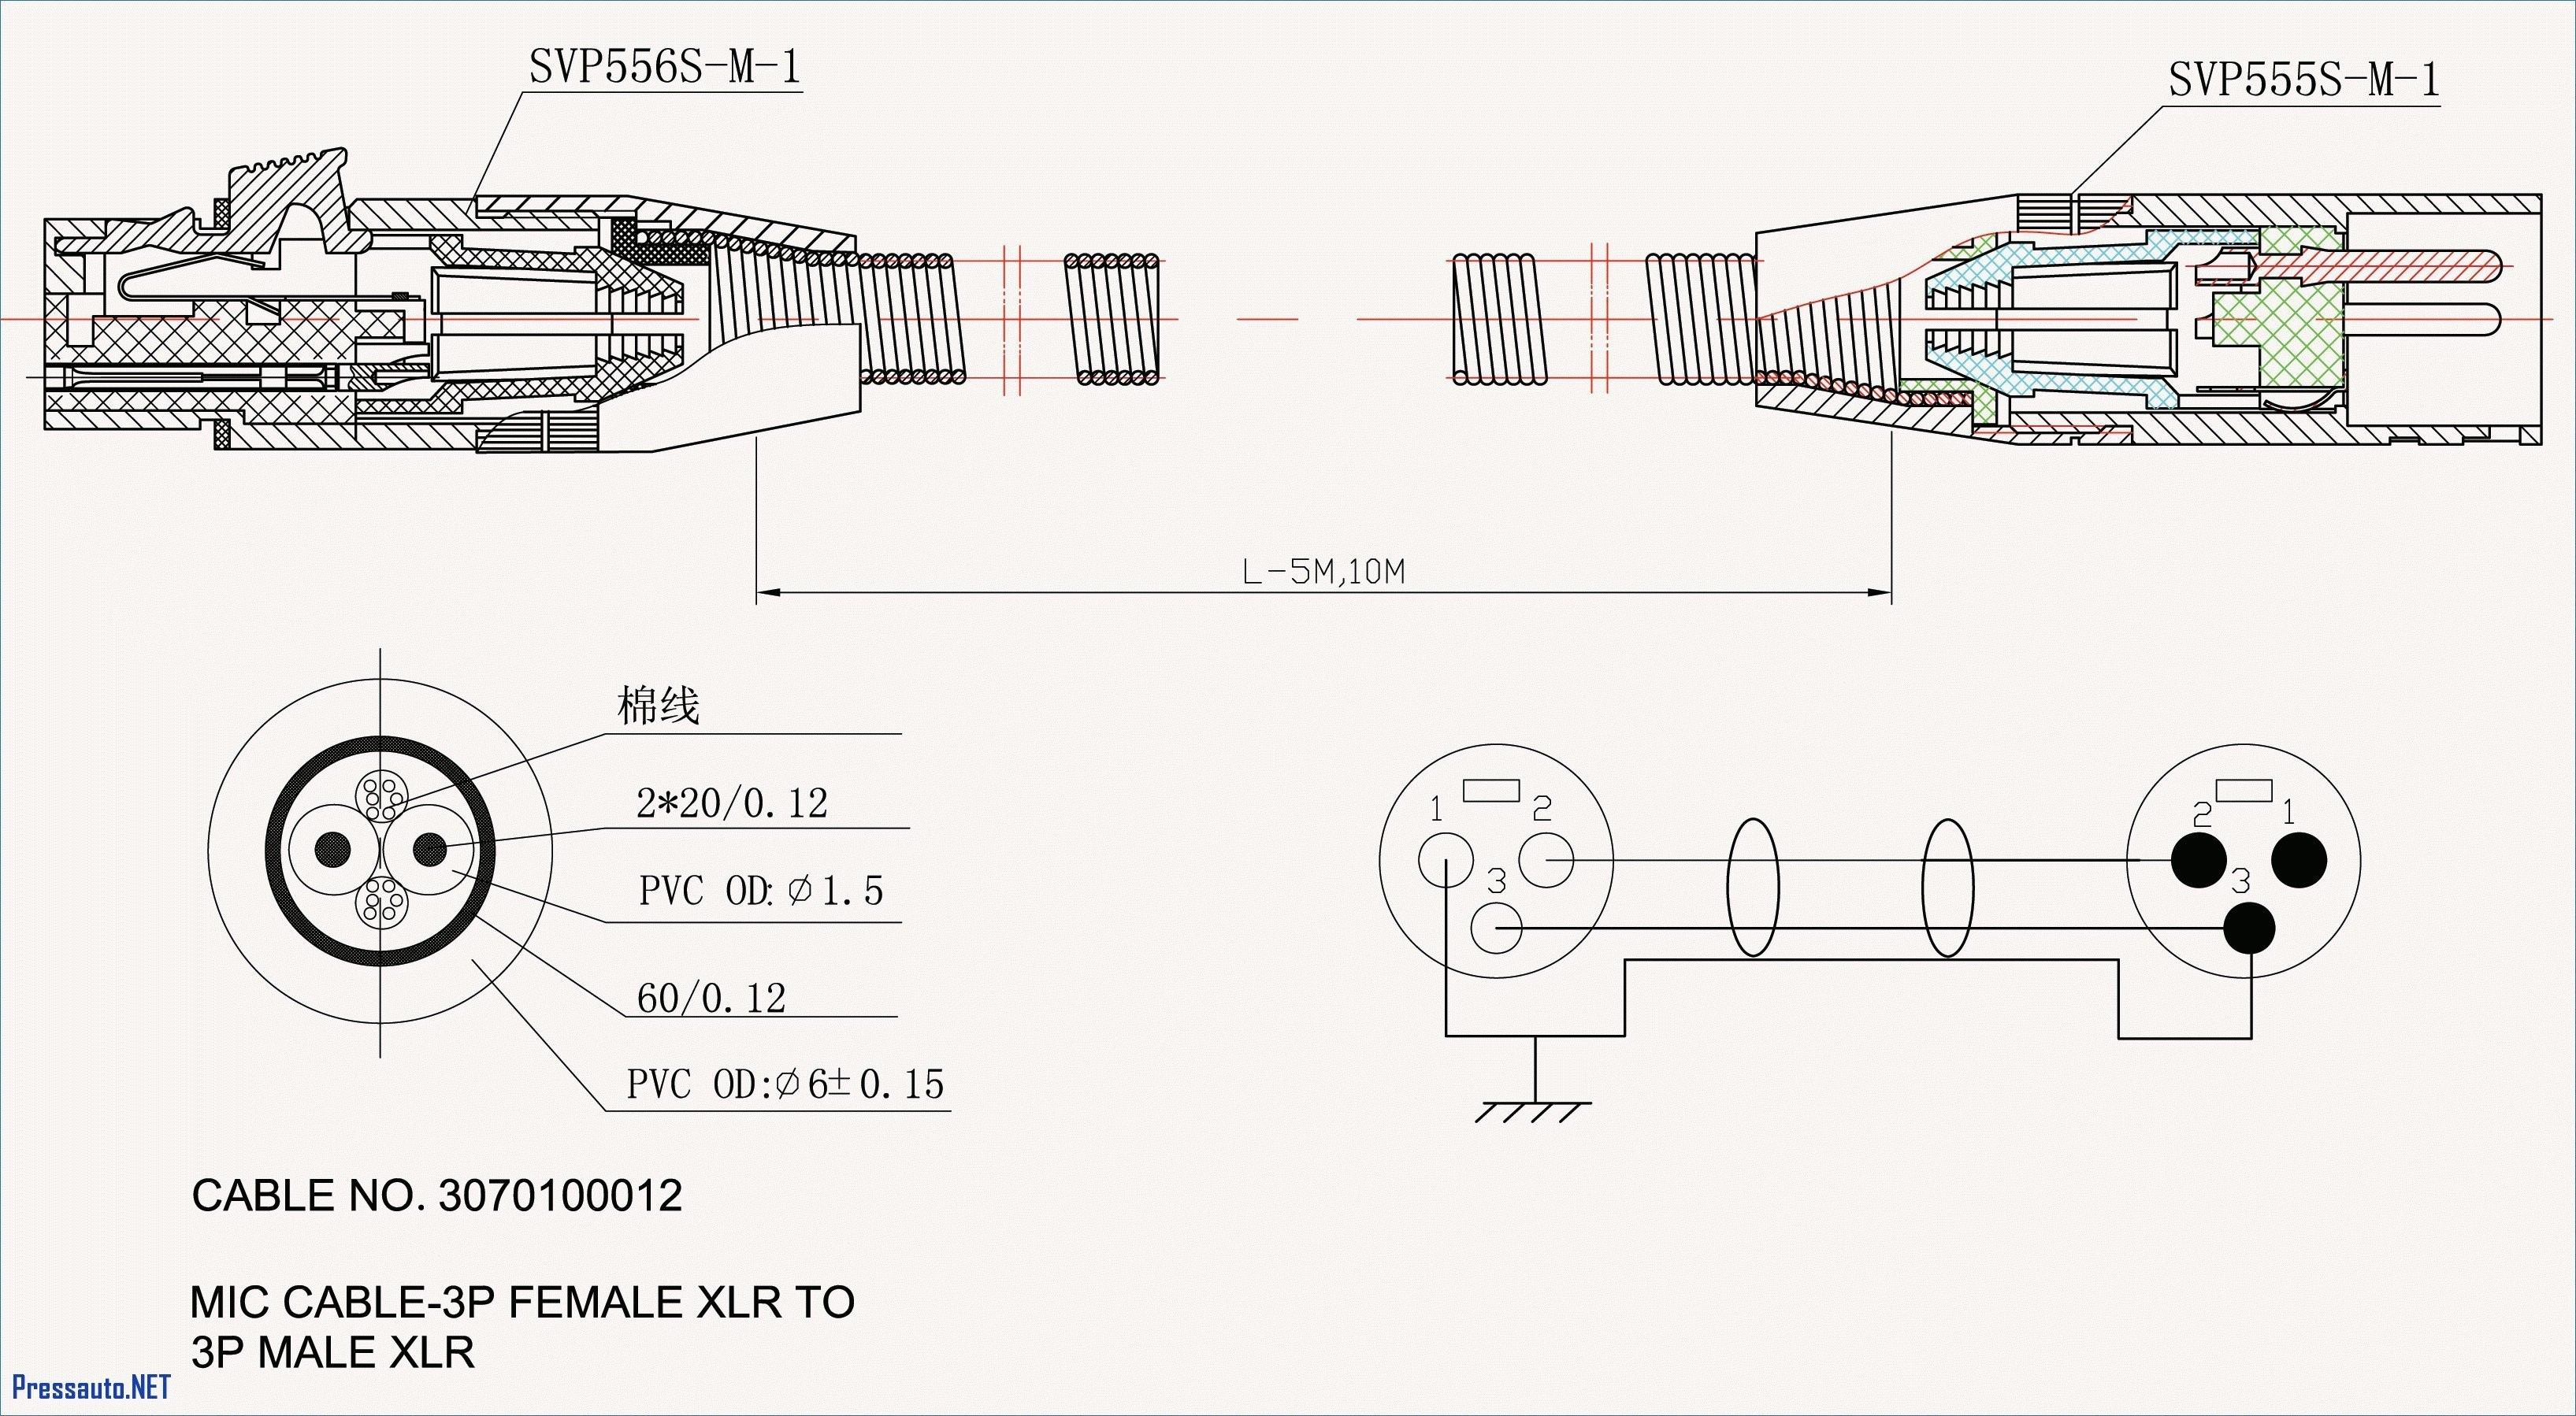 Wiring A 60 Amp Disconnect with A Gfi Nn 8306] Midwest Spa Disconnect Wiring Diagram Wiring Diagram Of Wiring A 60 Amp Disconnect with A Gfi